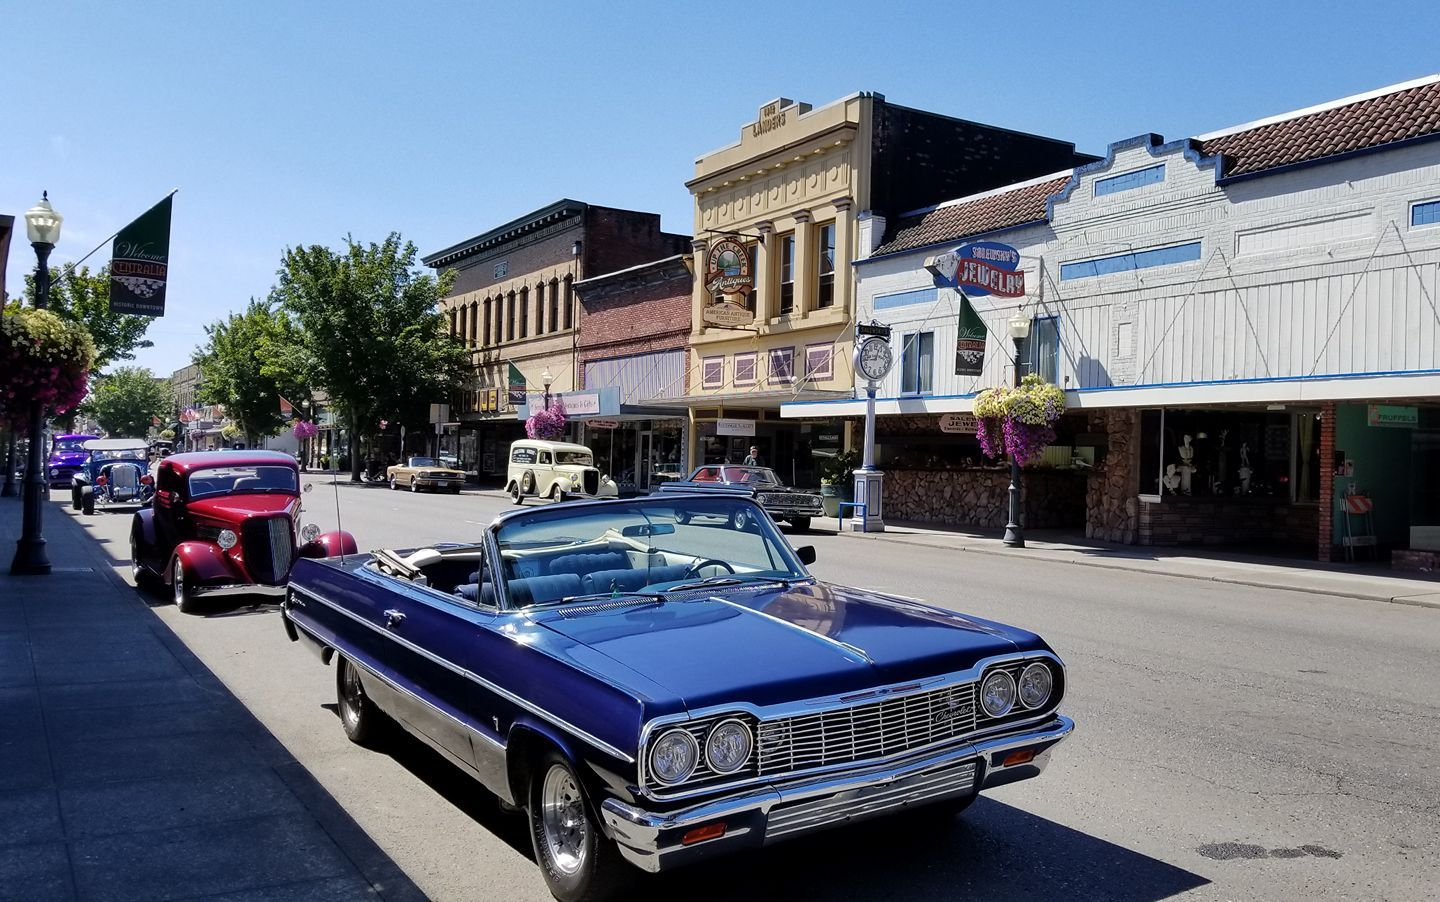 Welcome to historic downtown Centralia, Washington!